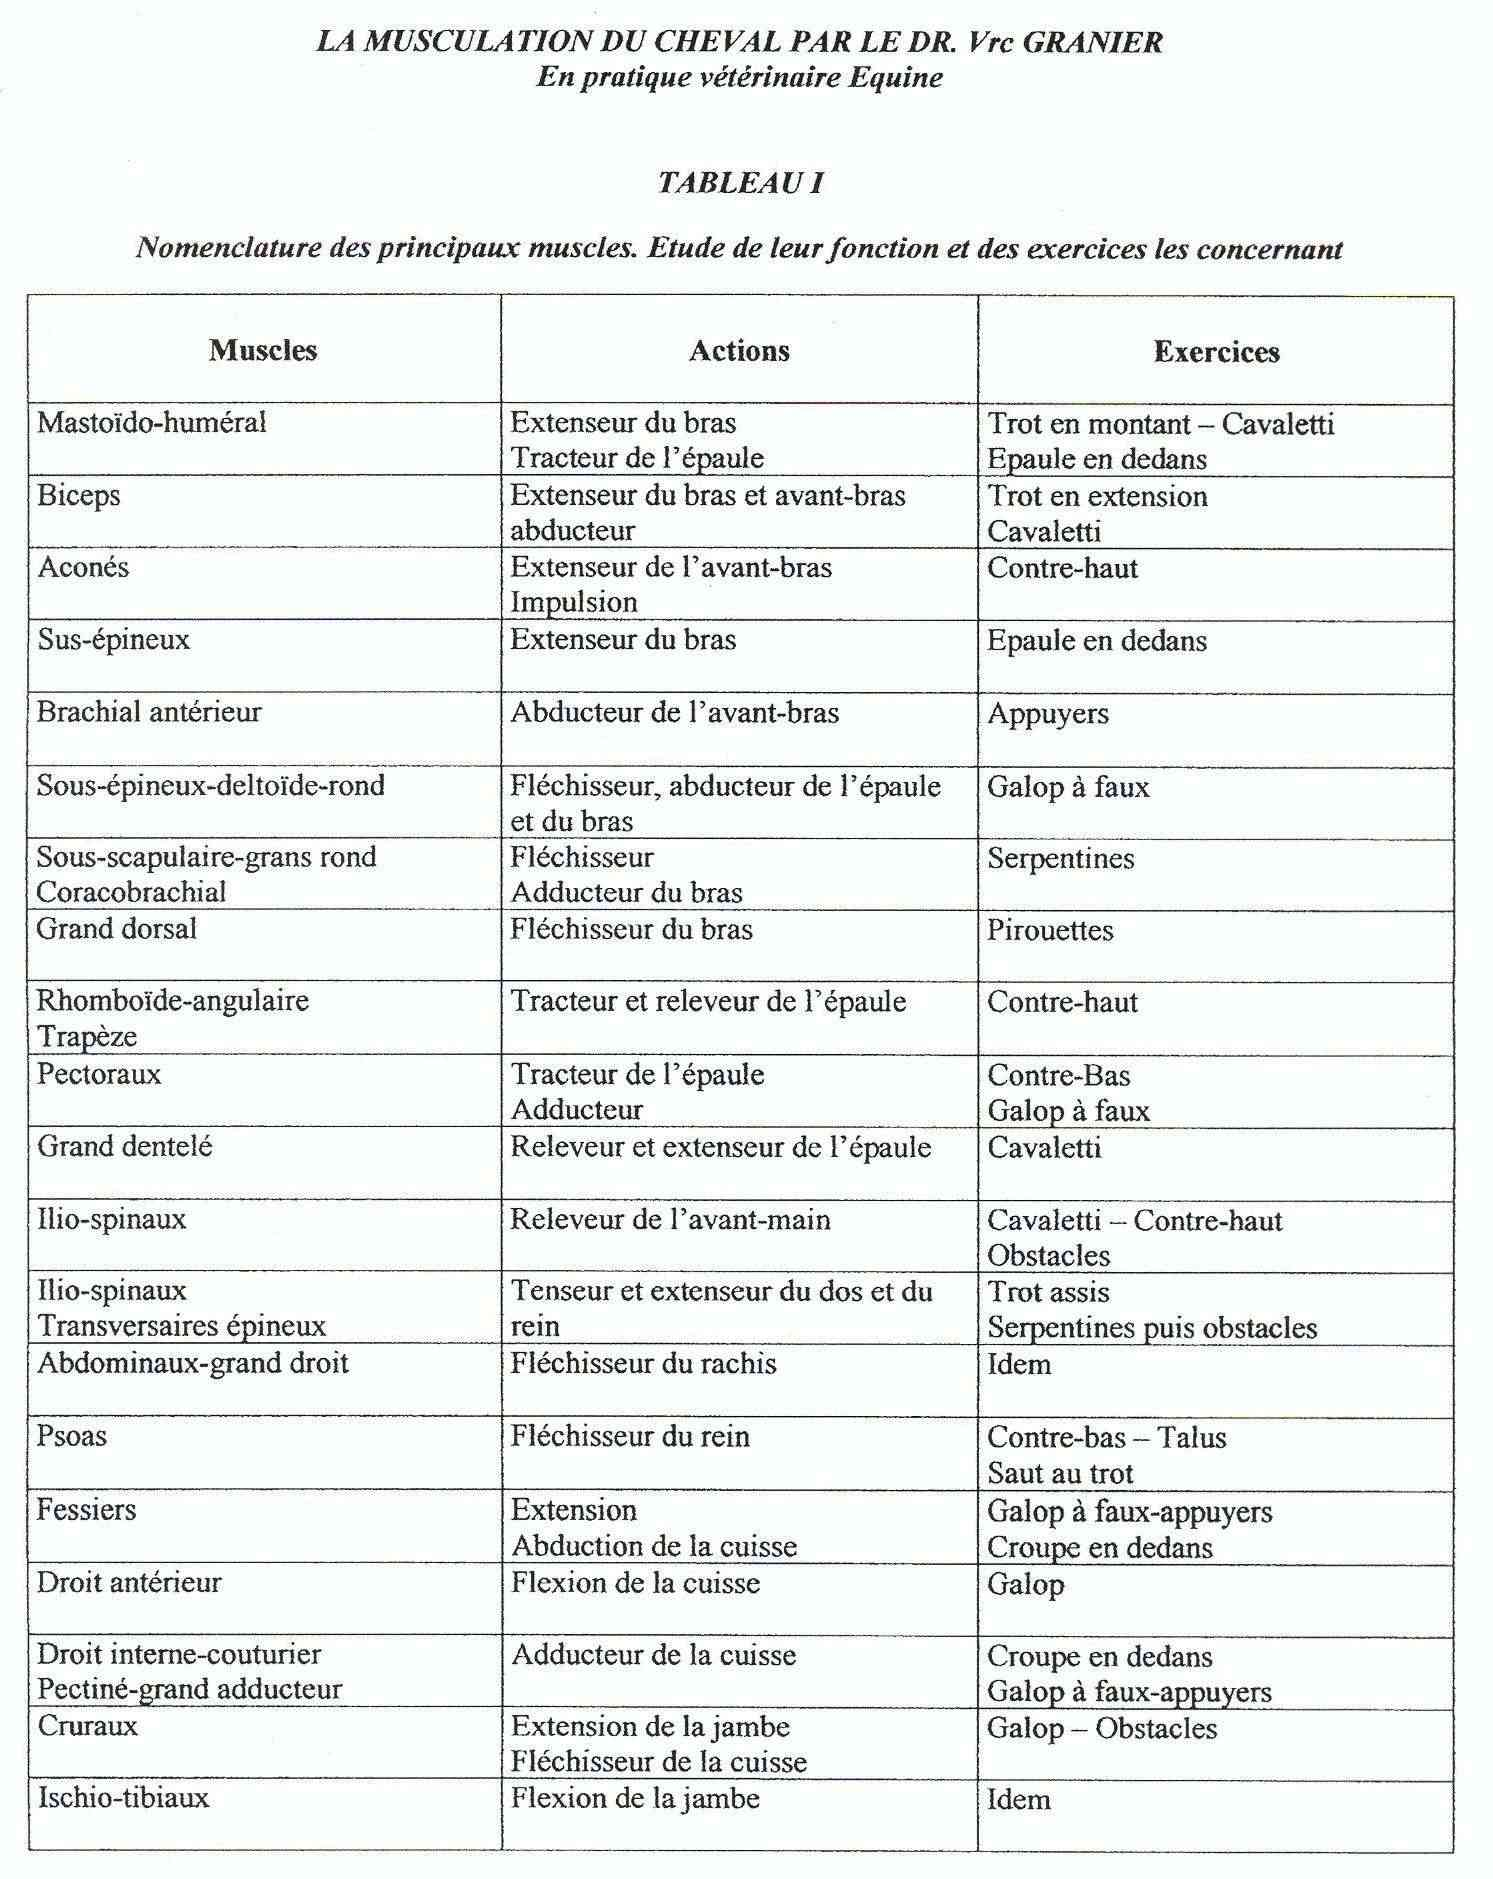 Fiches correspondance exercices - musculature 32_tab10